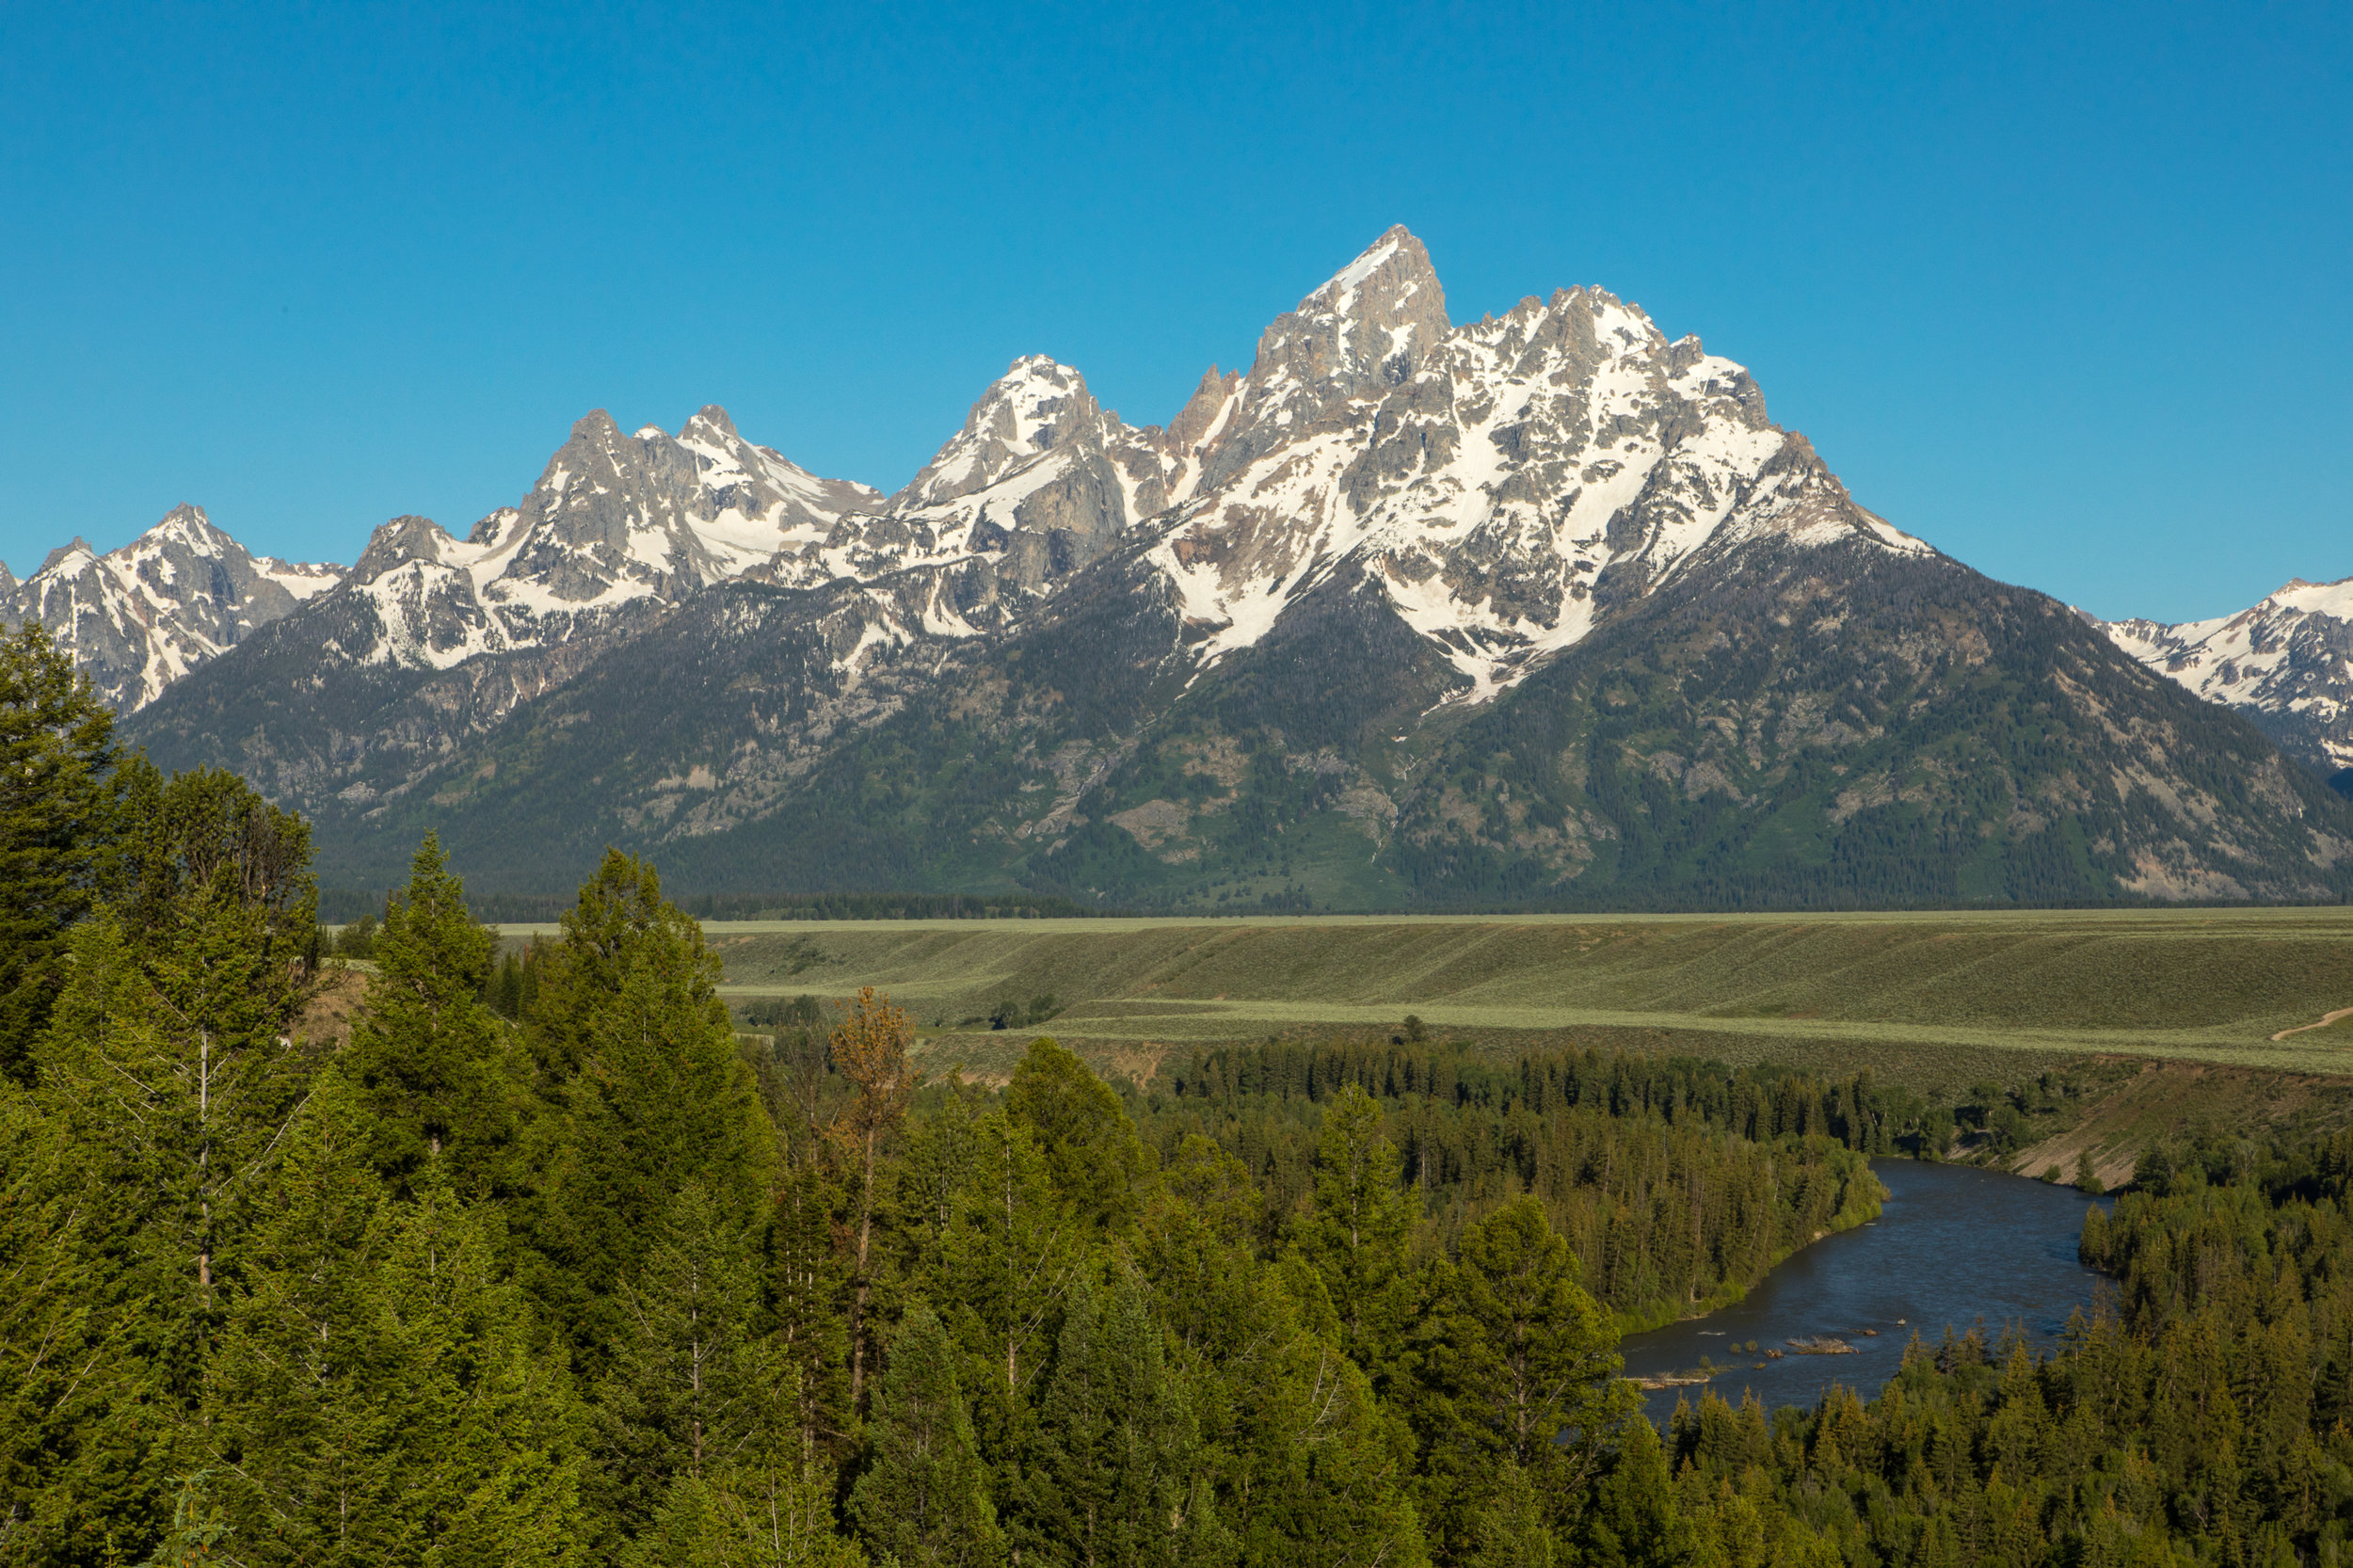 SNAKE RIVER OVERLOOK, IMAGE # 8923